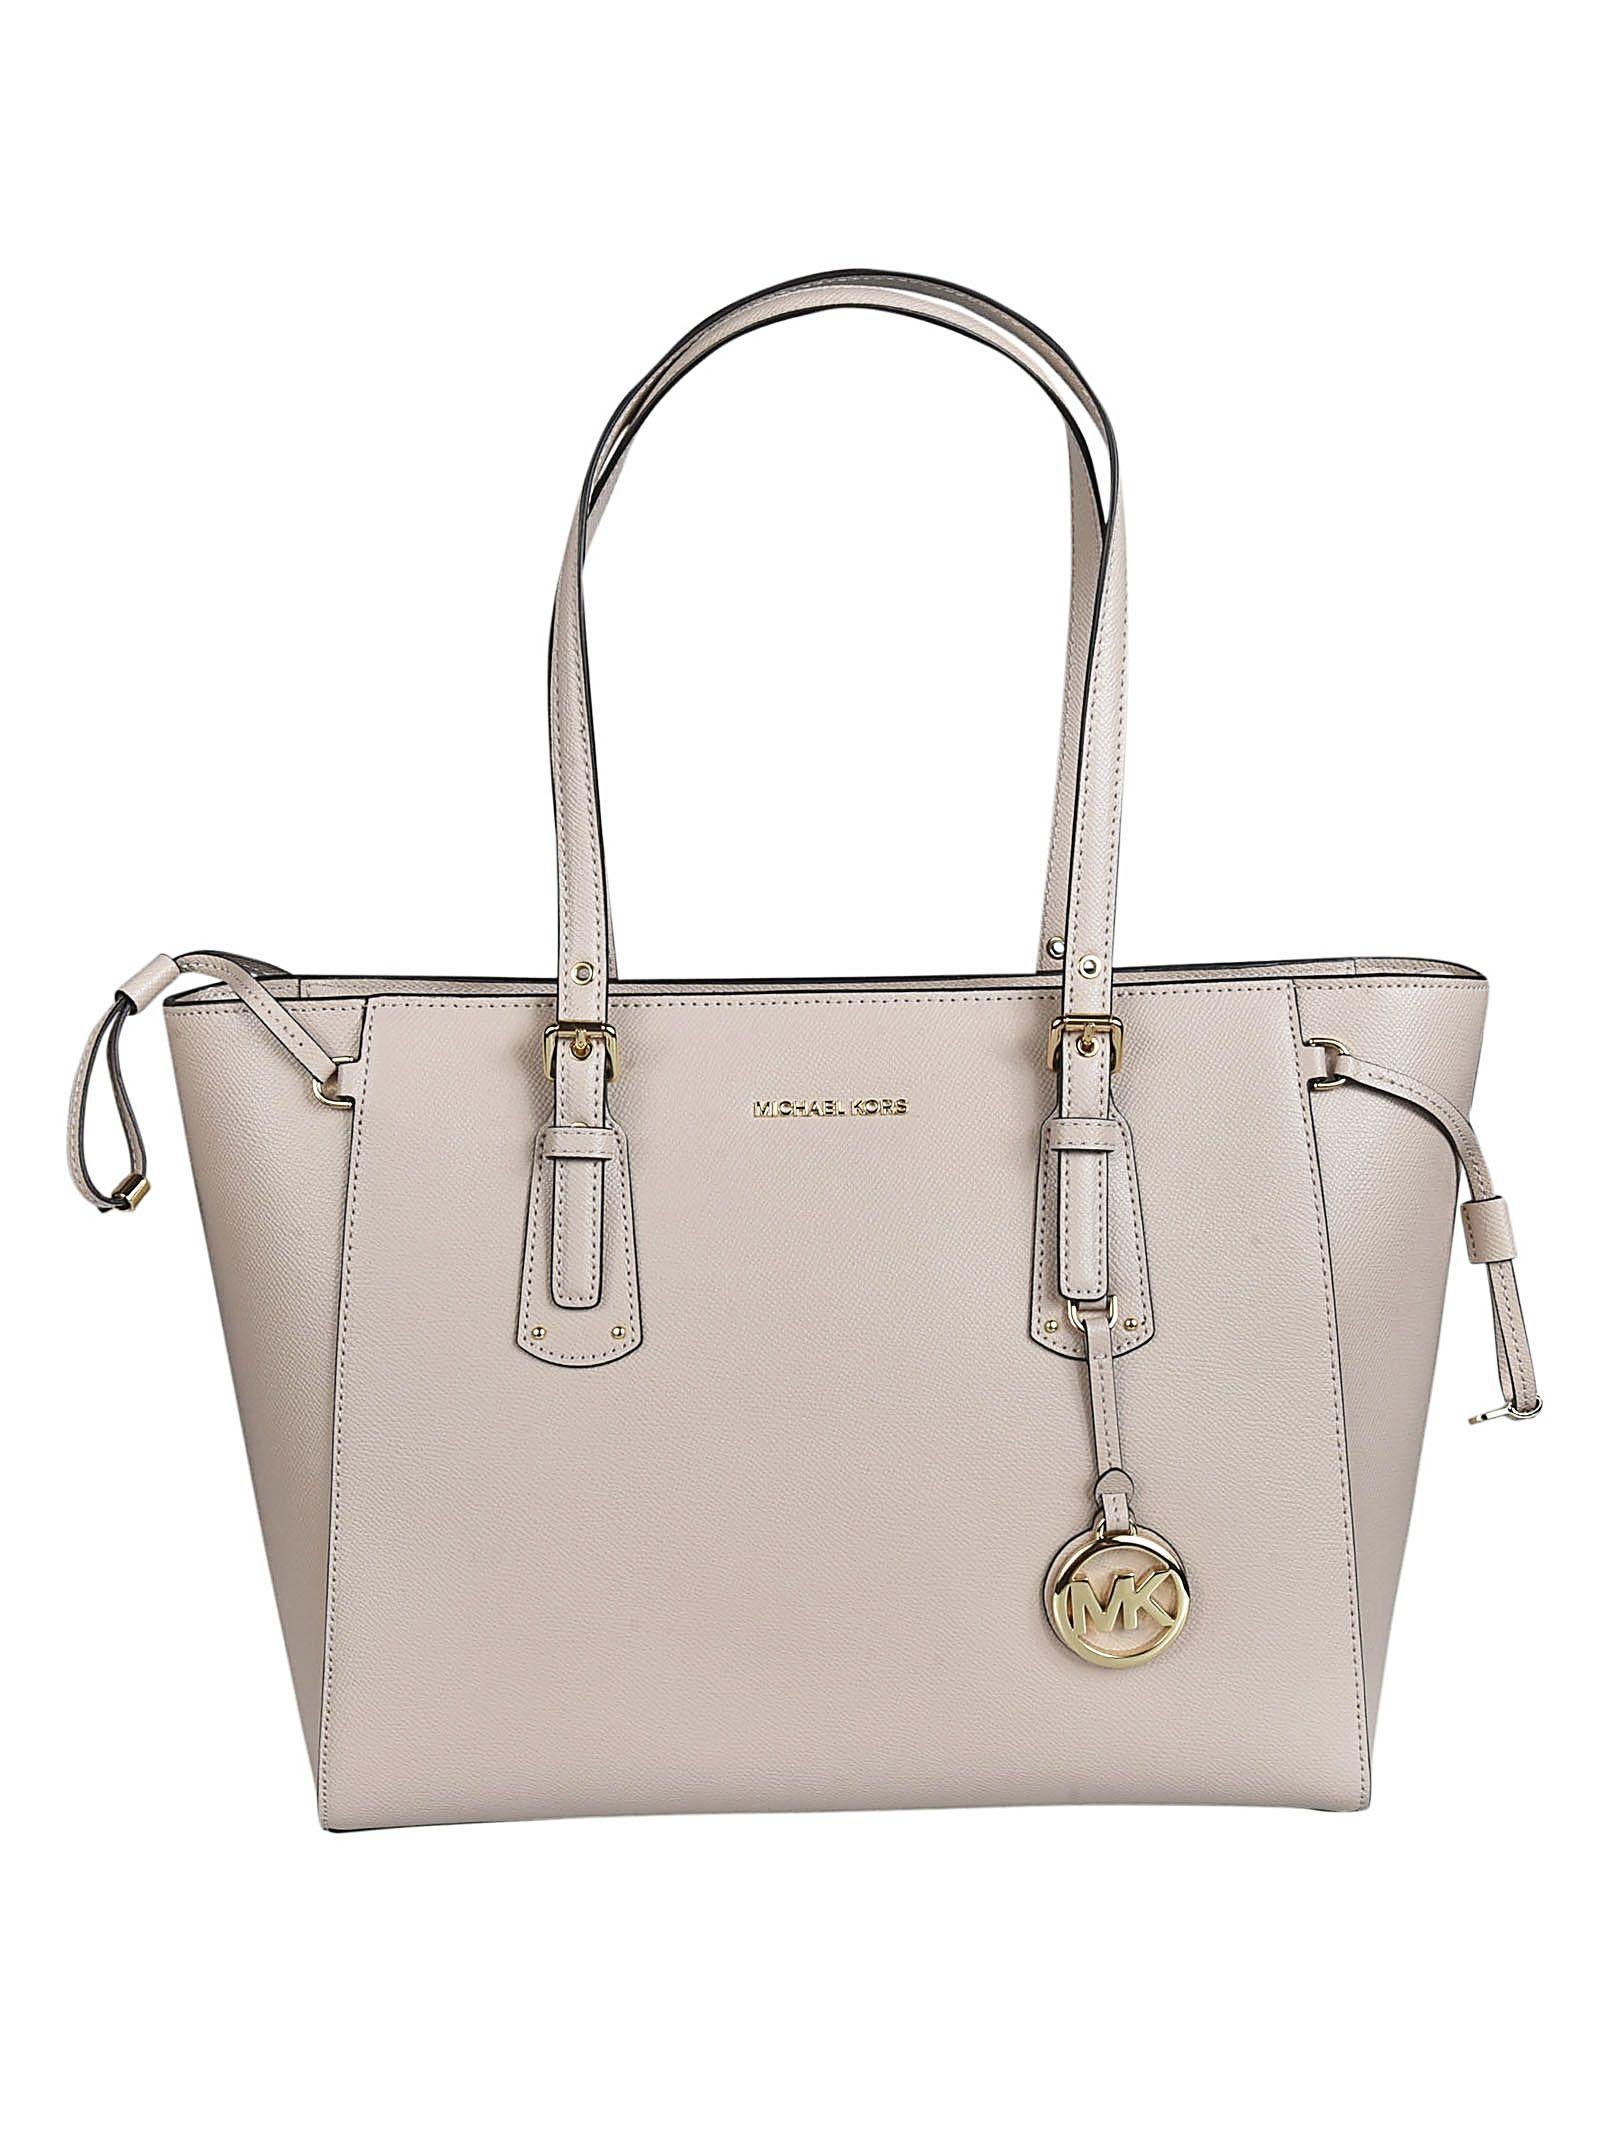 32505e602e55 Michael Kors Voyager Medium Tote In Soft Pink | ModeSens